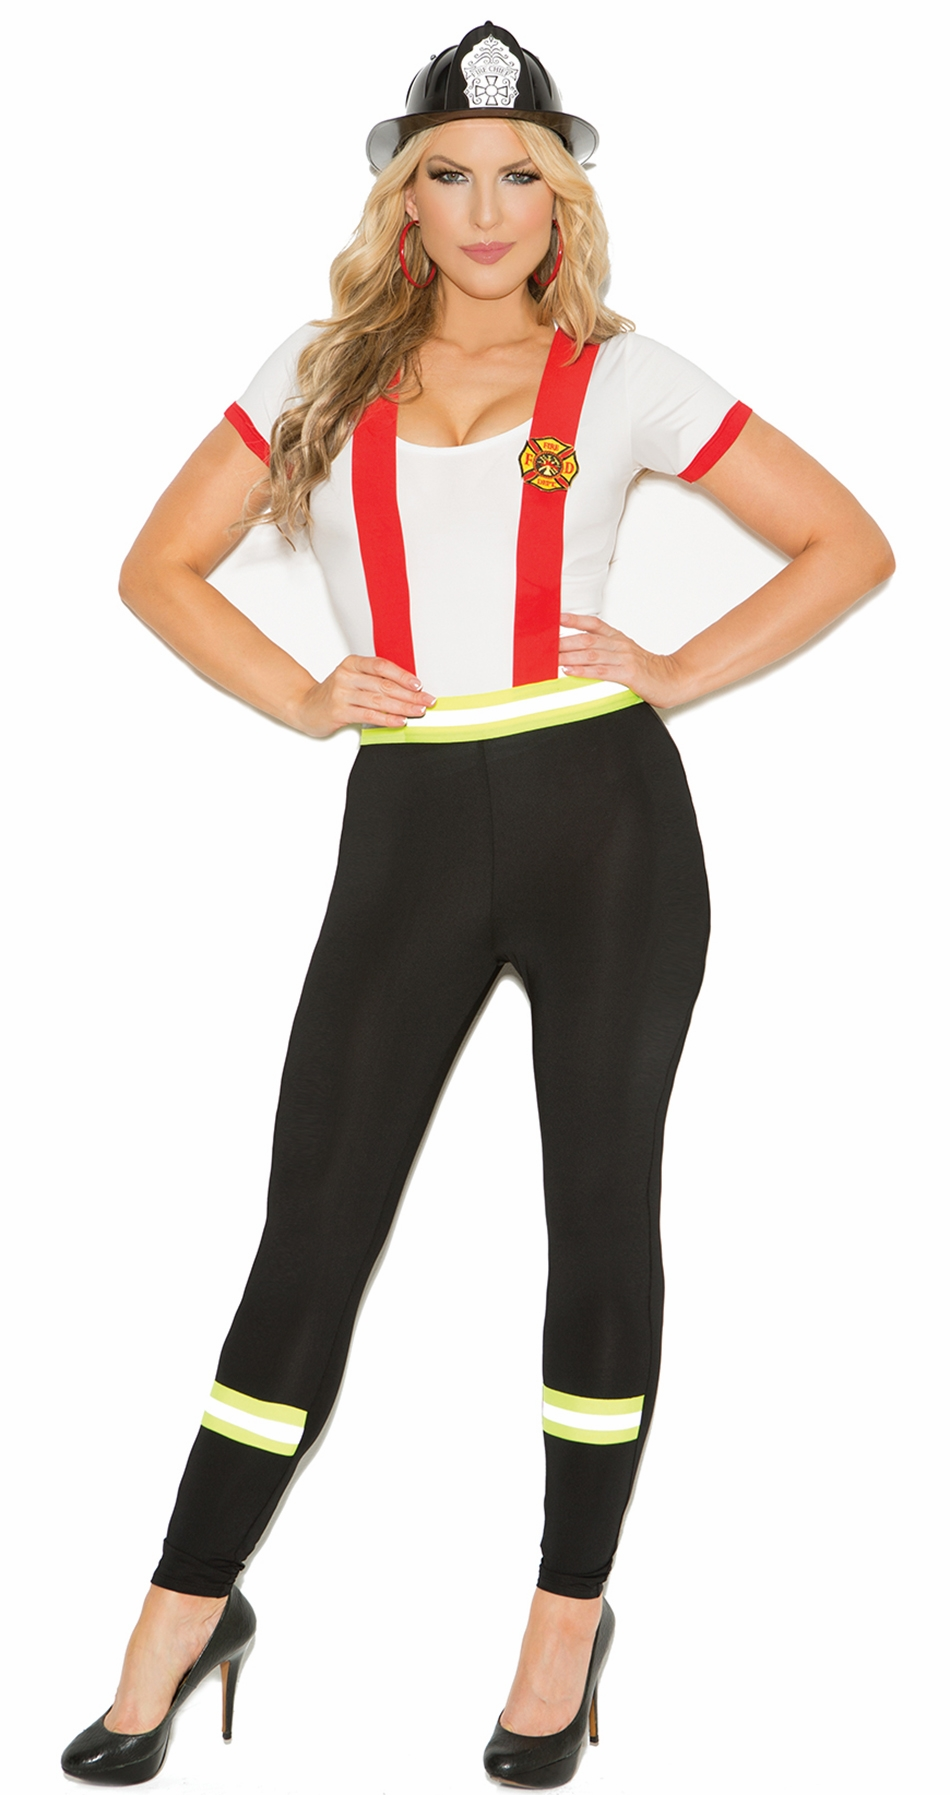 9133 Sexy Light My Fire Hero Adult Costume by Elegant Moments